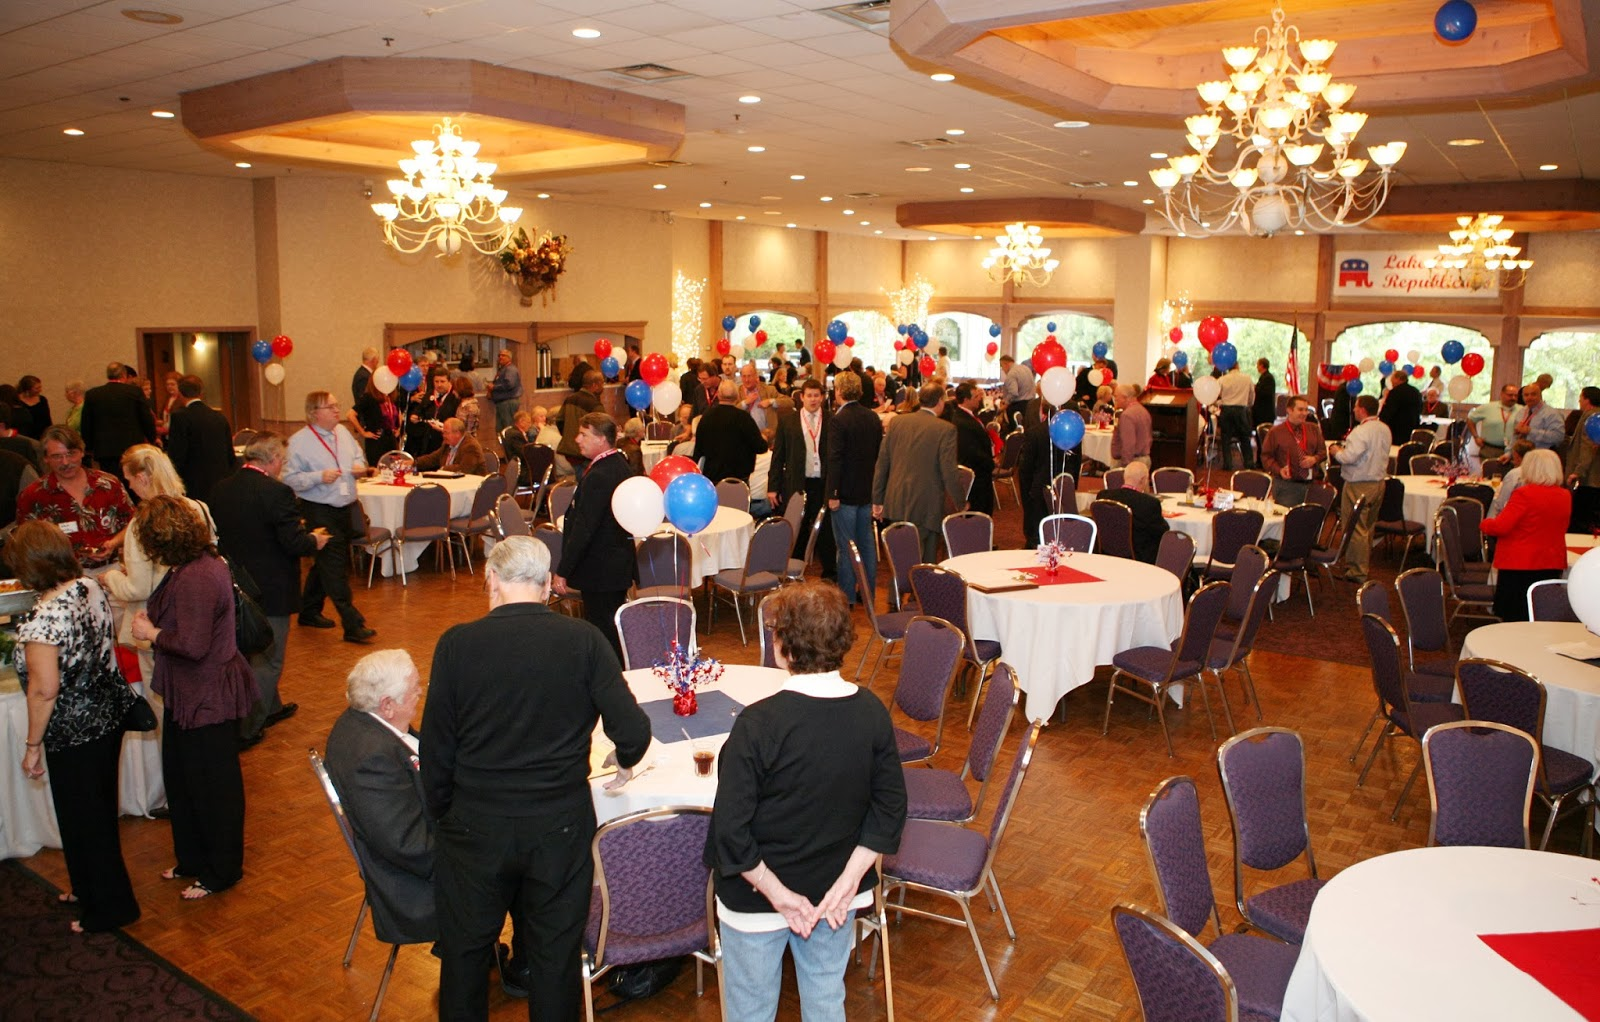 Turn Out At The Lake County Republican Central Committee Convention Midlane Country Club In Gurnee Mark Ukena Sun Times Media